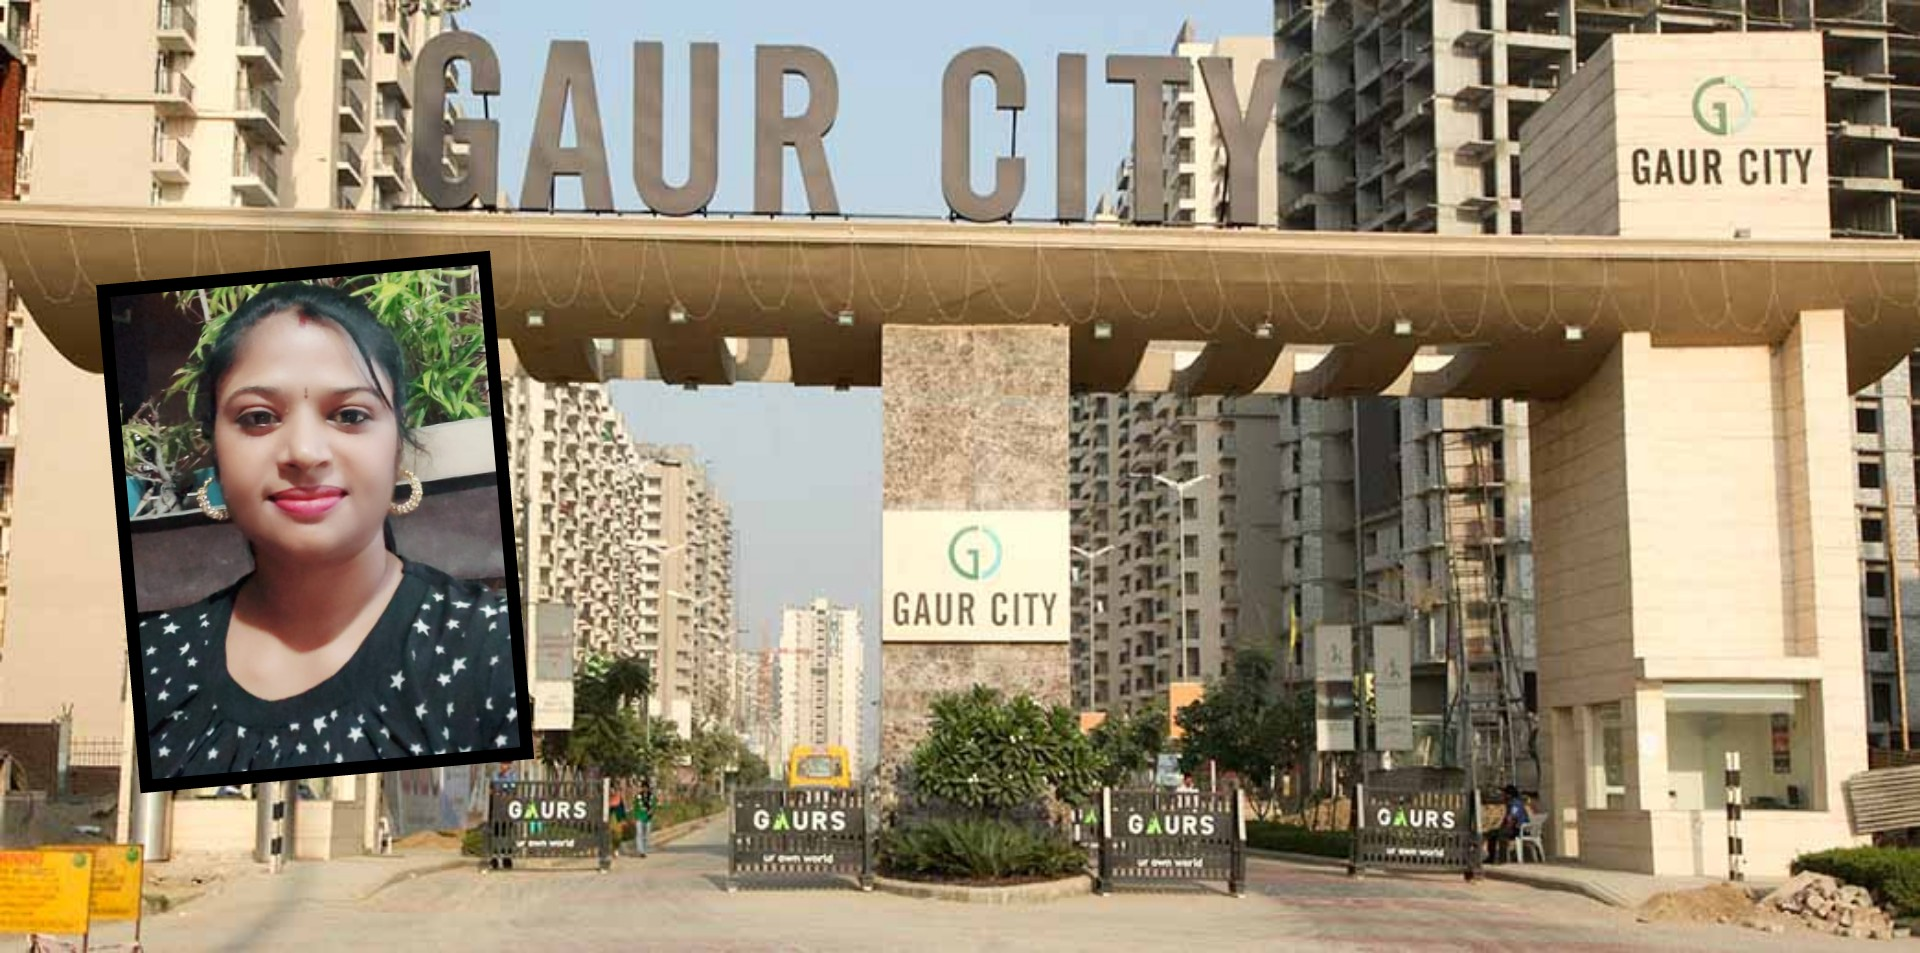 RESIDENT SPEAK: Gaur City 1 resident complains about dog waste in parks